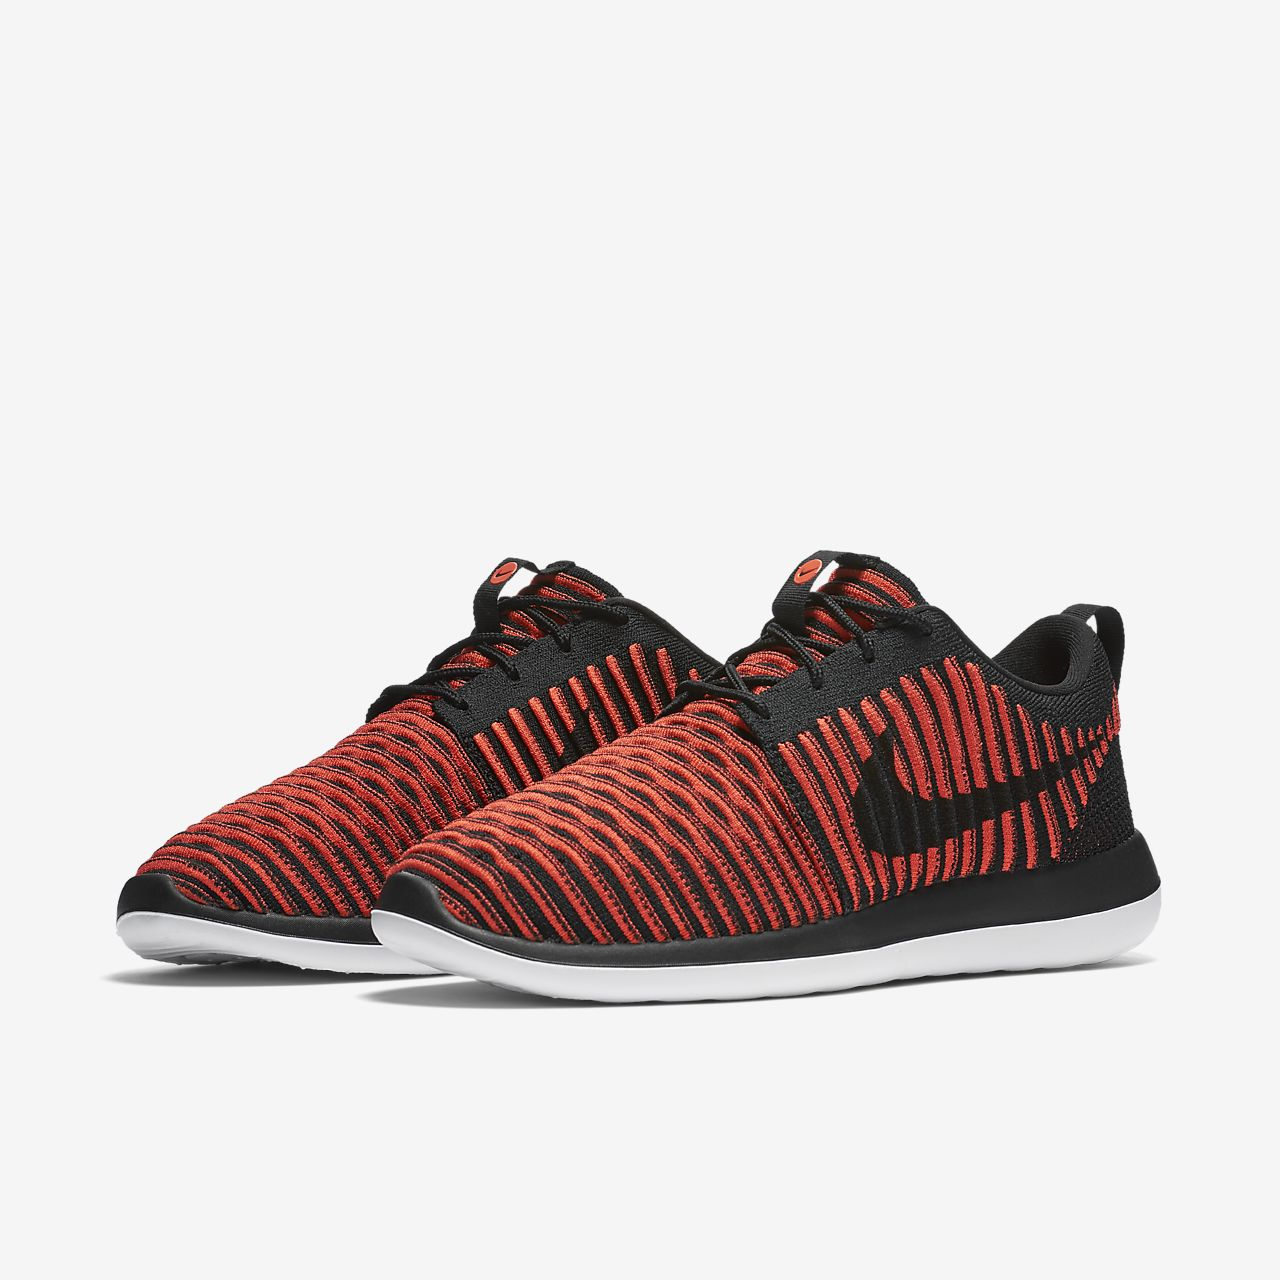 nike roshe flyknit men's shoe